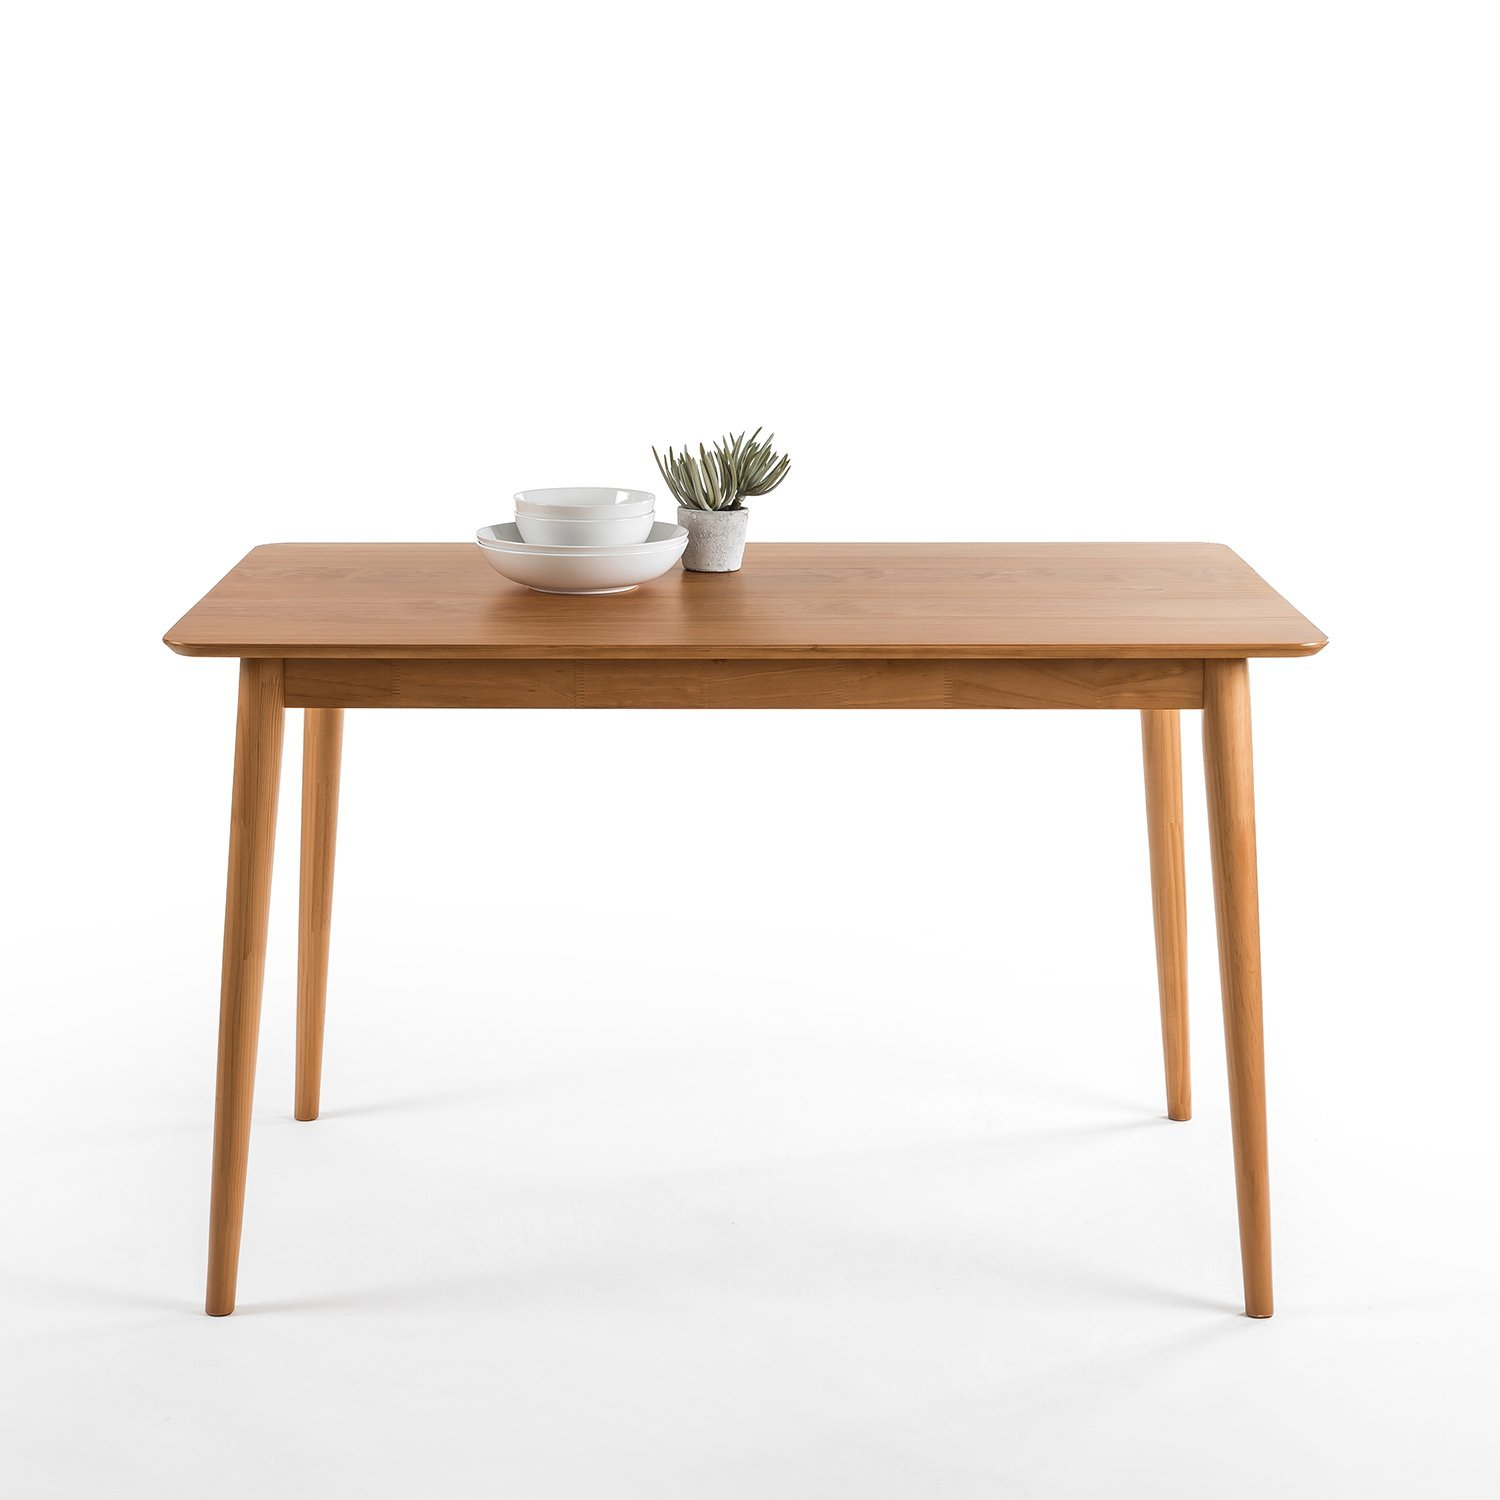 Zinus Jen Mid-Century Modern Wood Dining Table / Natural (Renewed) by Zinus